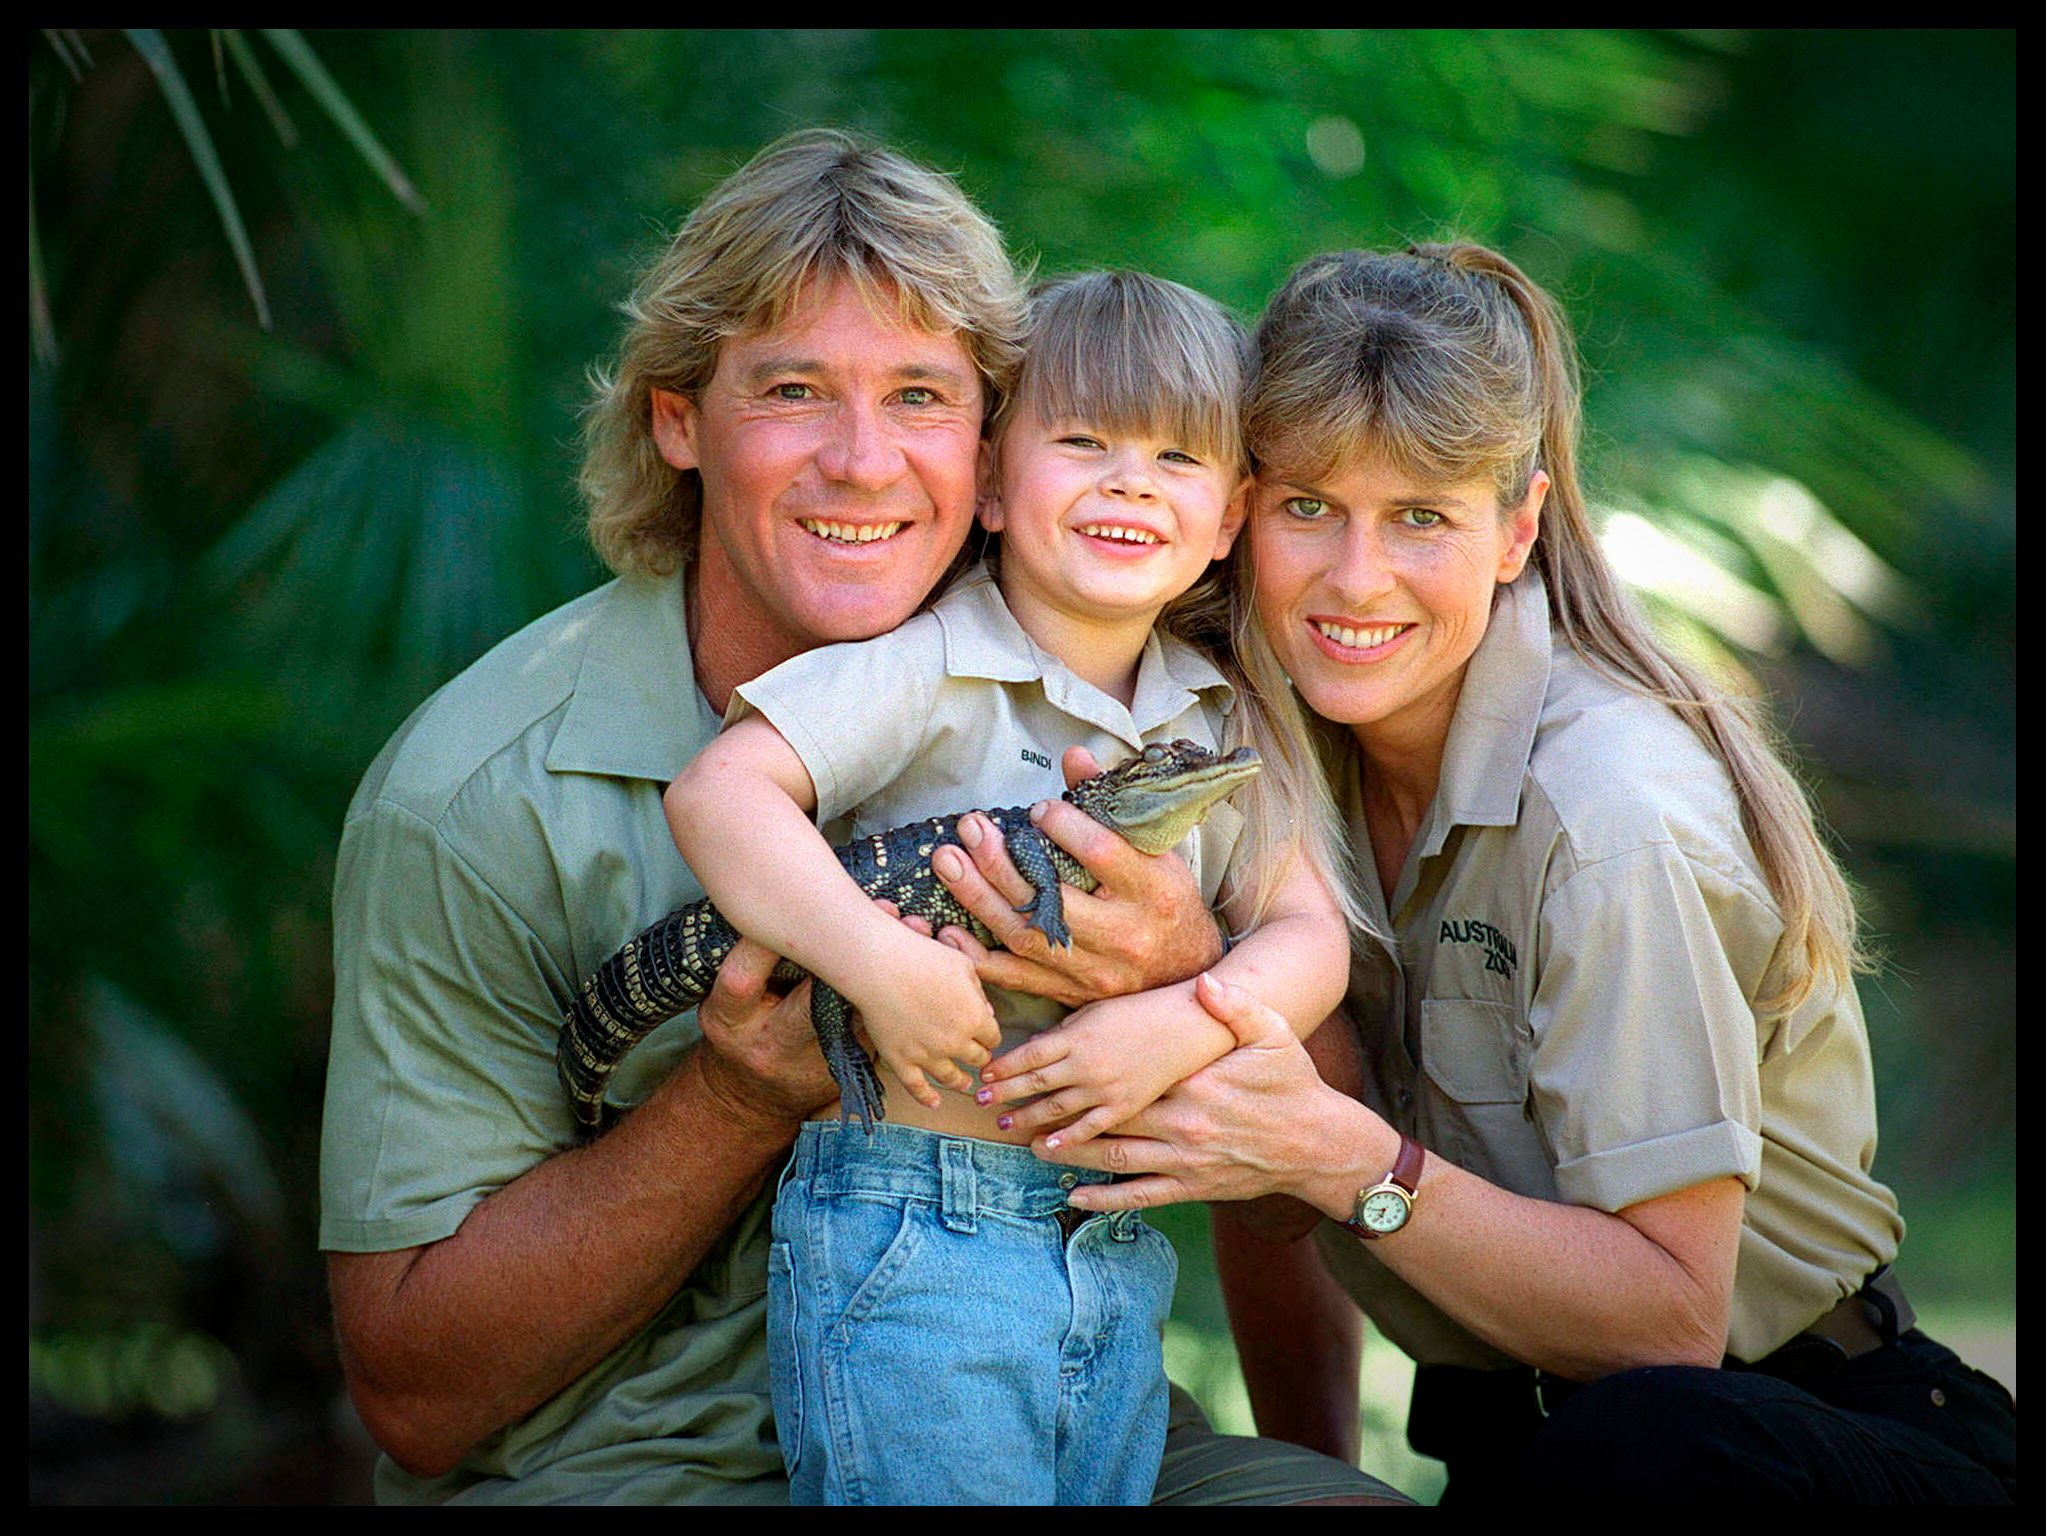 SUNSHINE COAST, AUSTRALIA - DECEMBER 14, 2002:  (EUROPE AND AUSTRALASIA OUT) 'Crocodile Hunter' Steve Irwin with his wife Terri Irwin, and daughter Bindi Irwin, and a baby crocodile at Australia Zoo in Queensland. (Photo by Newspix/Getty Images)